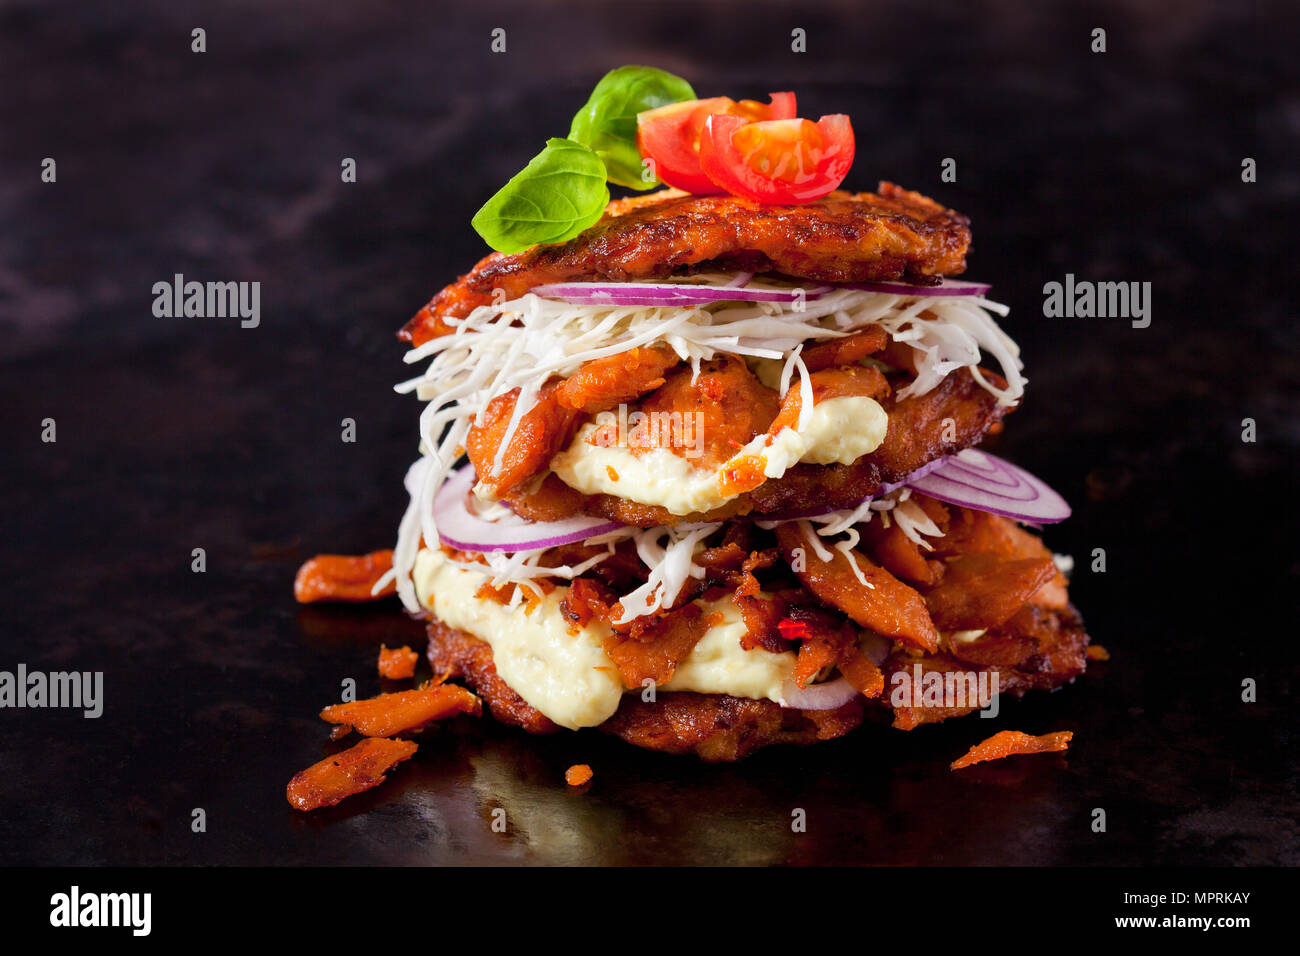 Veggie Burger made of potato fritters,  sweet potatoes, soy meat, remoulade and Barbecue sauce - Stock Image